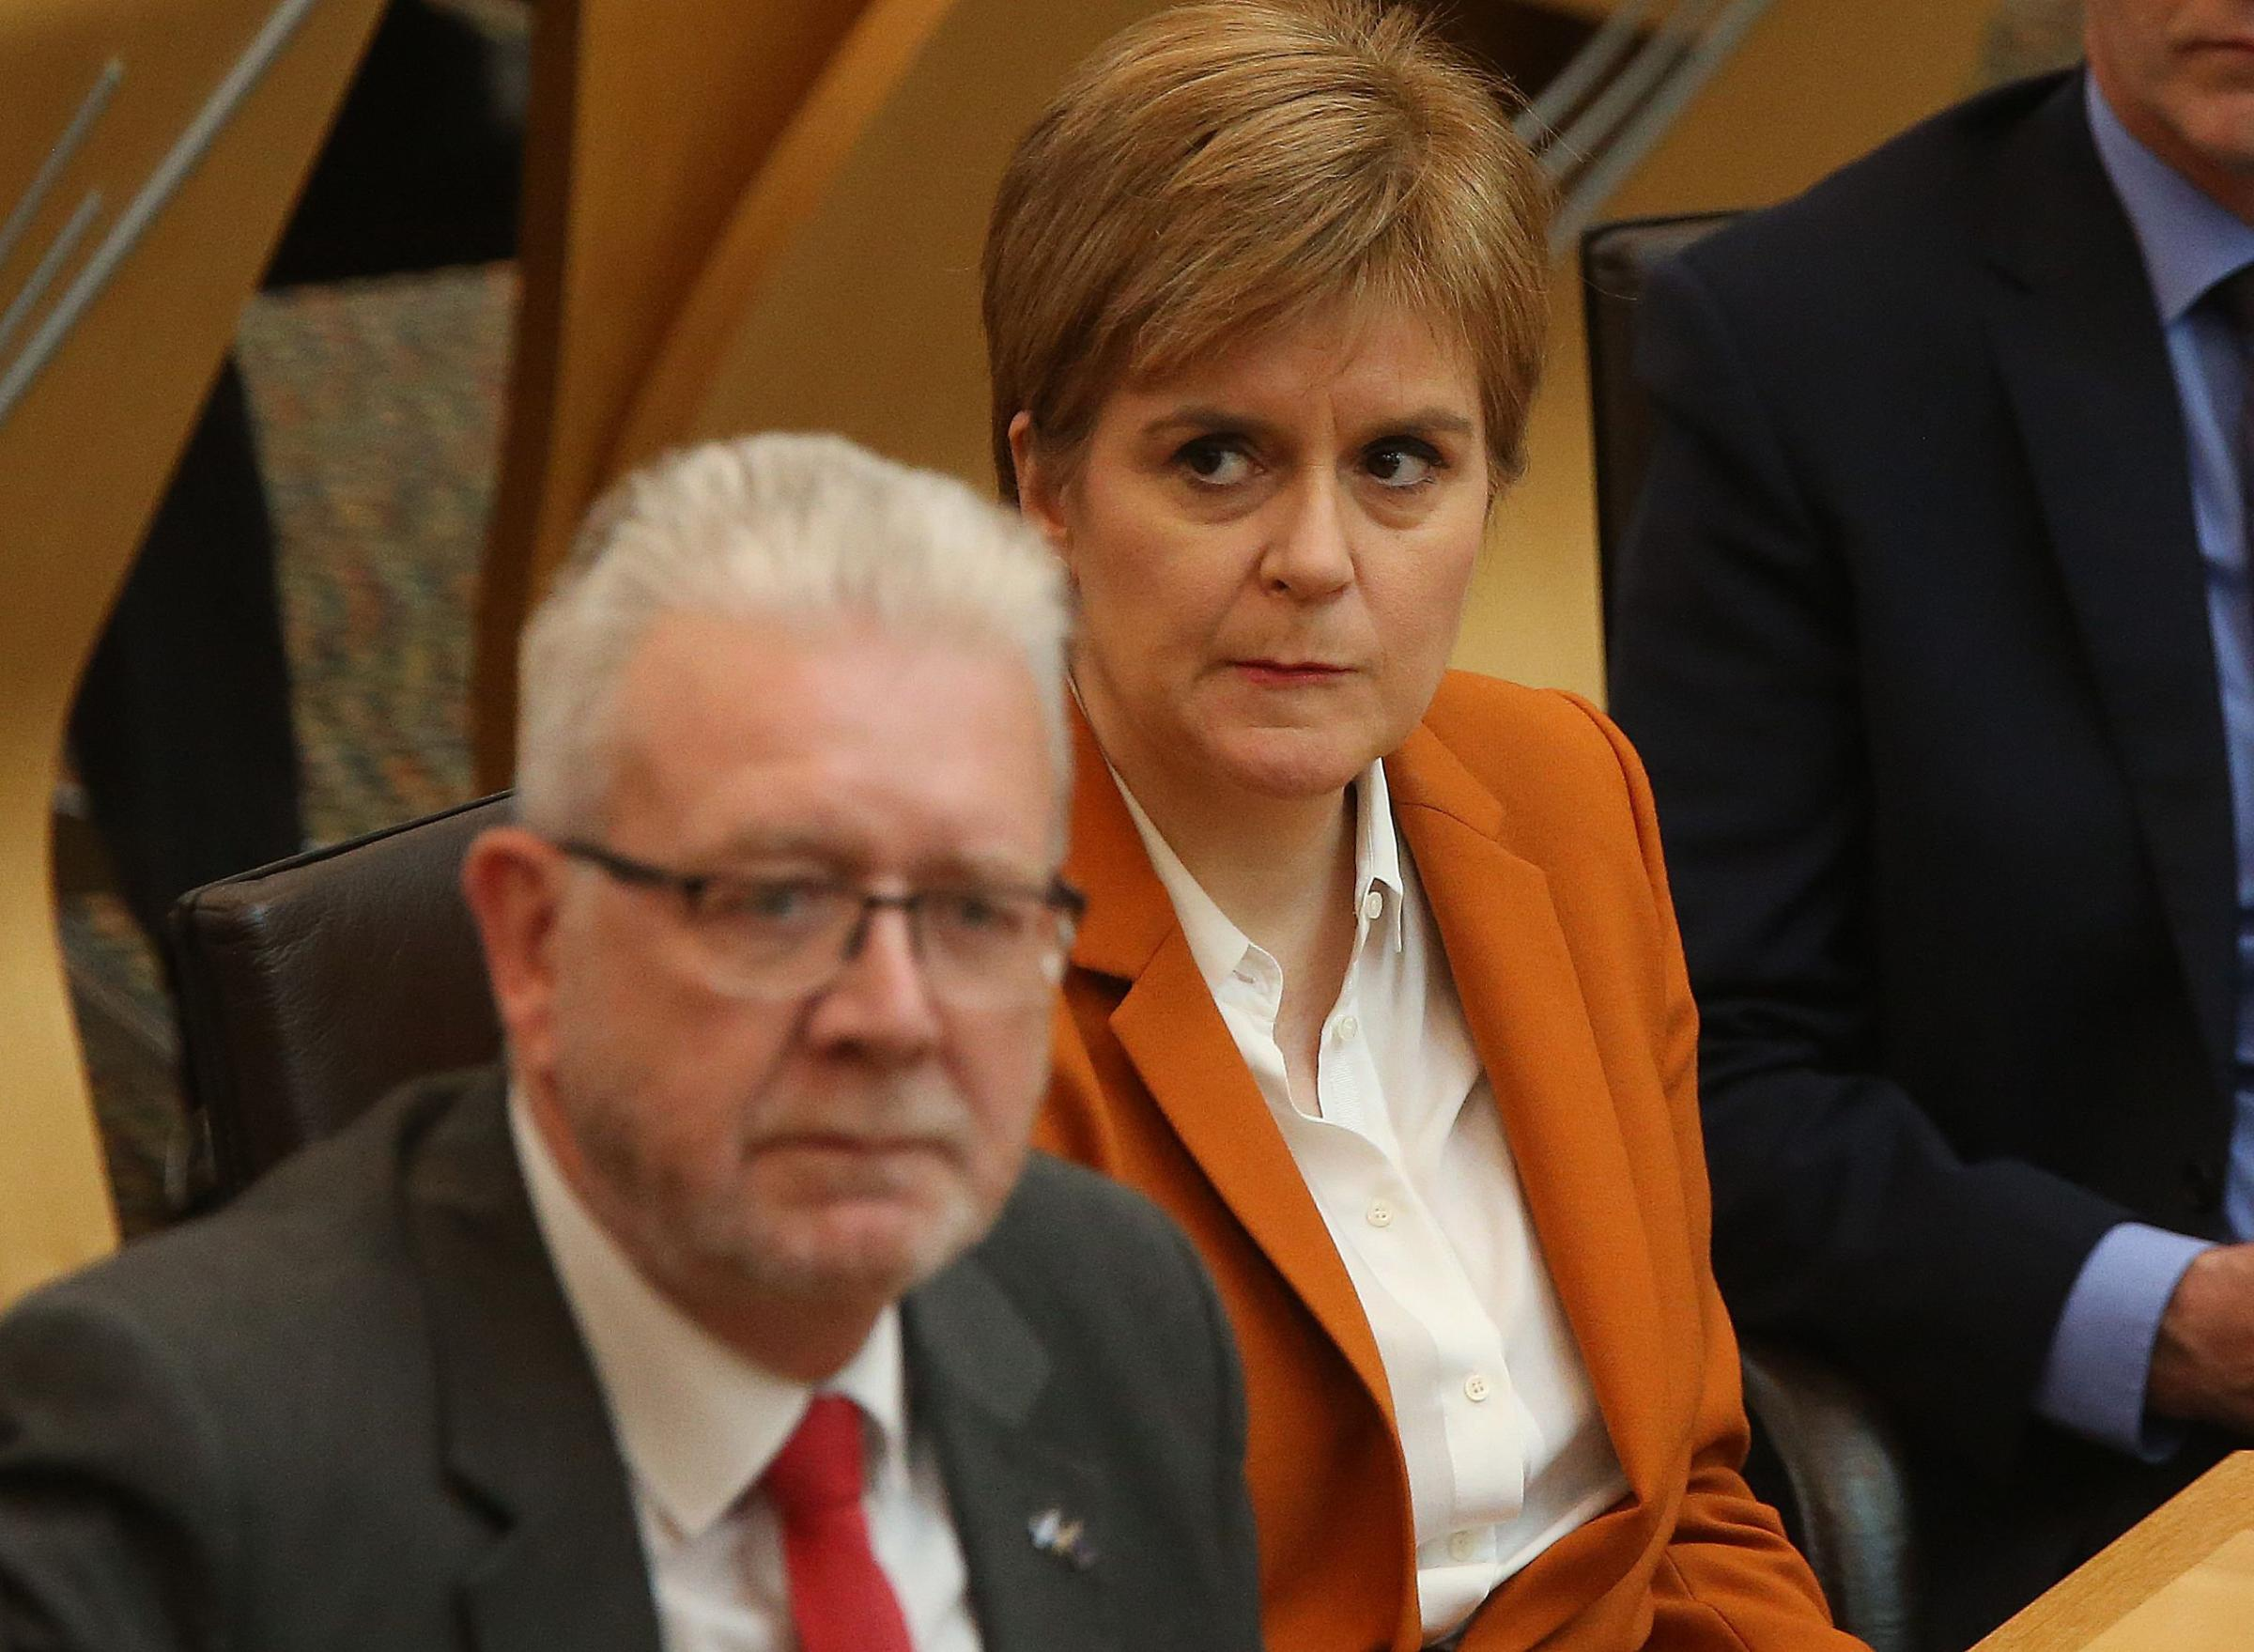 Scottish Brexit Minister Michael Russell and First Minister Nicola Sturgeon during the Brexit debate at Holyrood on TuesdayPicture: Gordon Terris